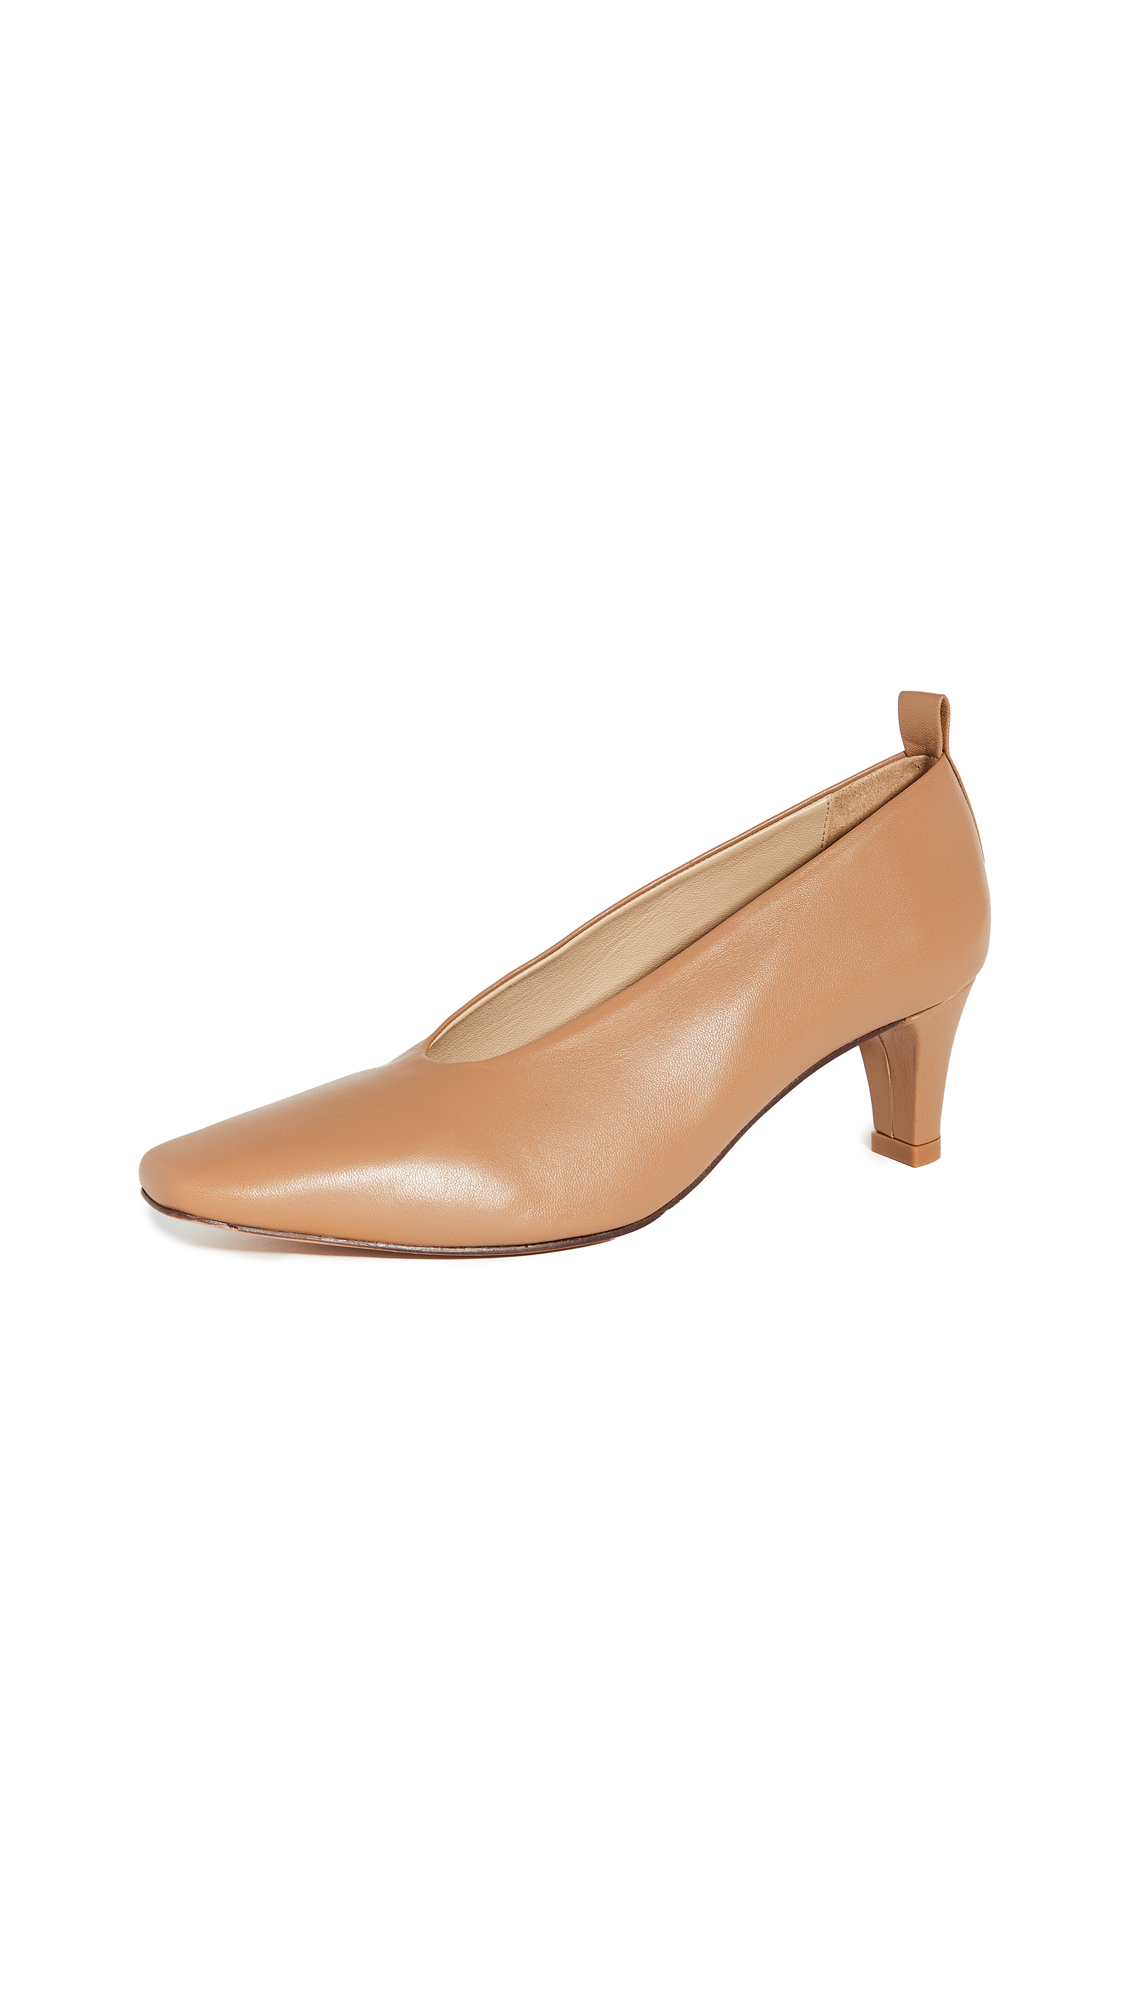 Mari Giudicelli Elizabeth Pumps - 30% Off Sale